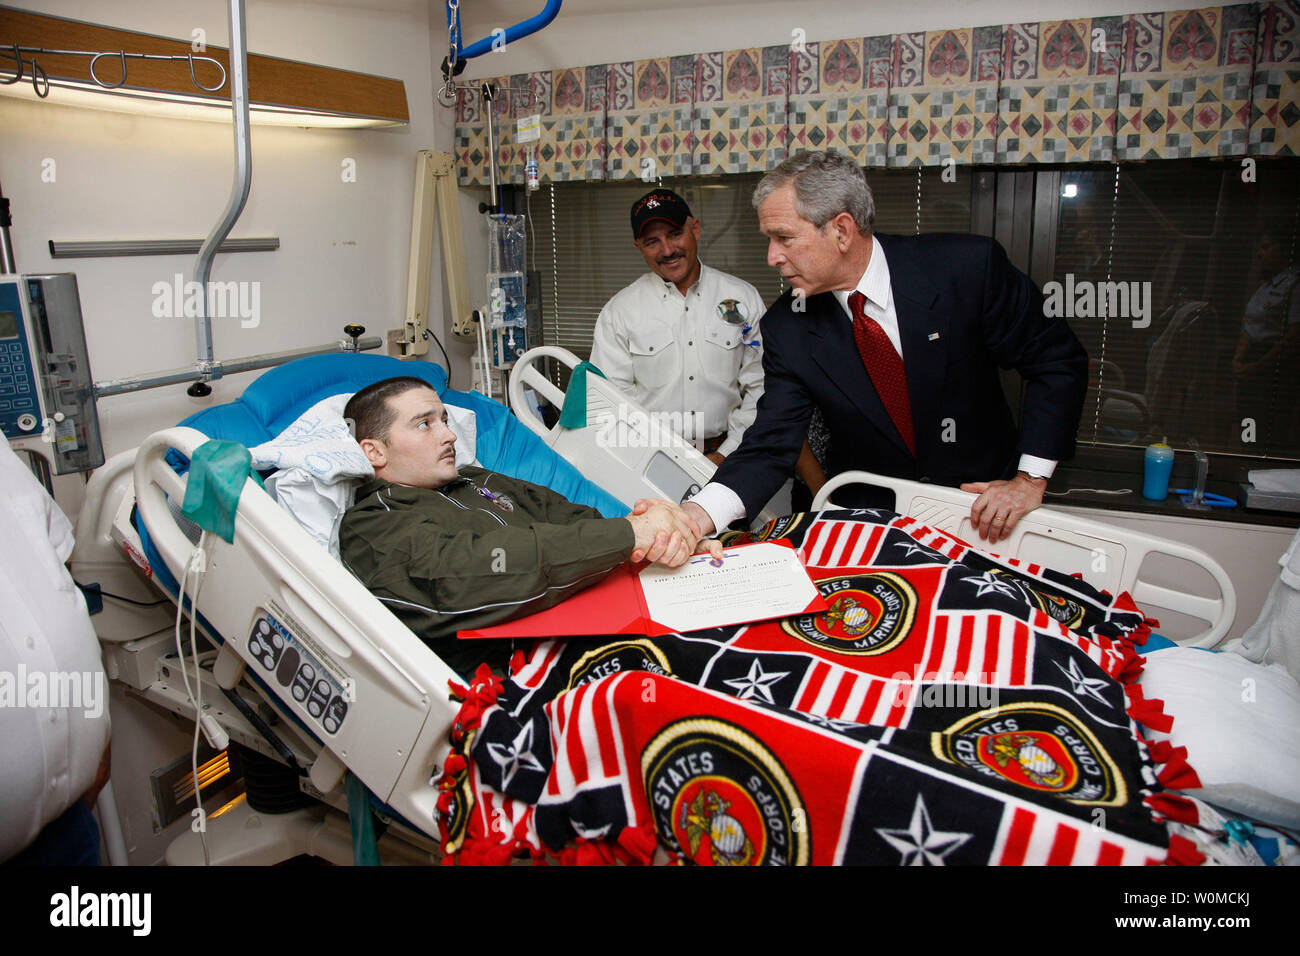 U.S. President George W. Bush shakes hands with U.S. Marine Corps Lance Cpl. Justin Rokohl of Orange Grove, Texas, after awarding him a Purple Heart medal at the Walter Reed National Military Medical Center in Bethesda, Maryland on July 3, 2008. Rokohl's father, John, looks on. (UPI Photo/Eric Draper/White House Press Office) Stock Photo